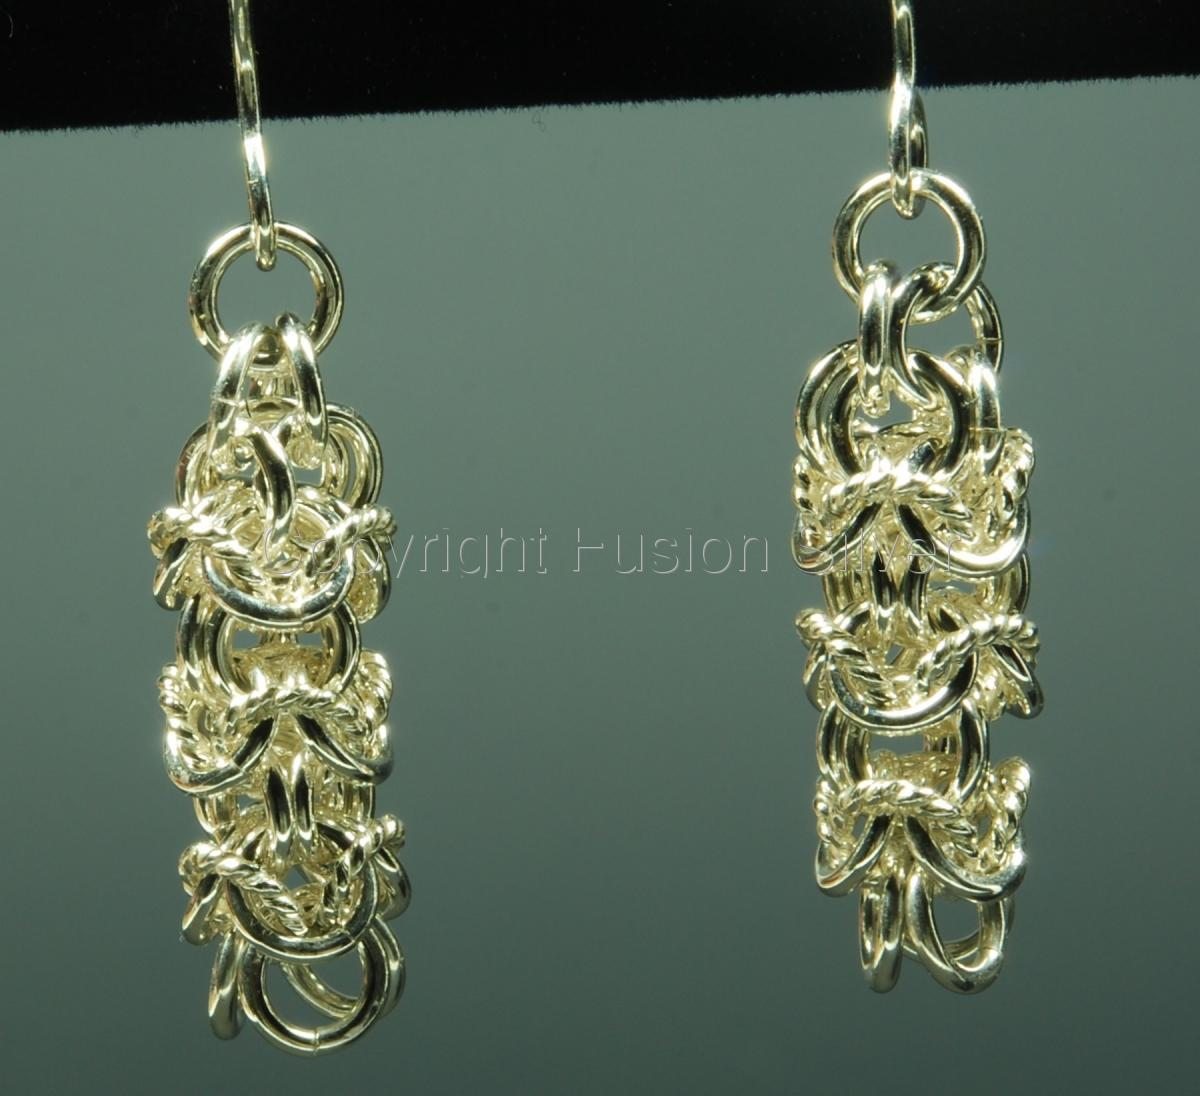 Turkish round twisted wire earrings (large view)